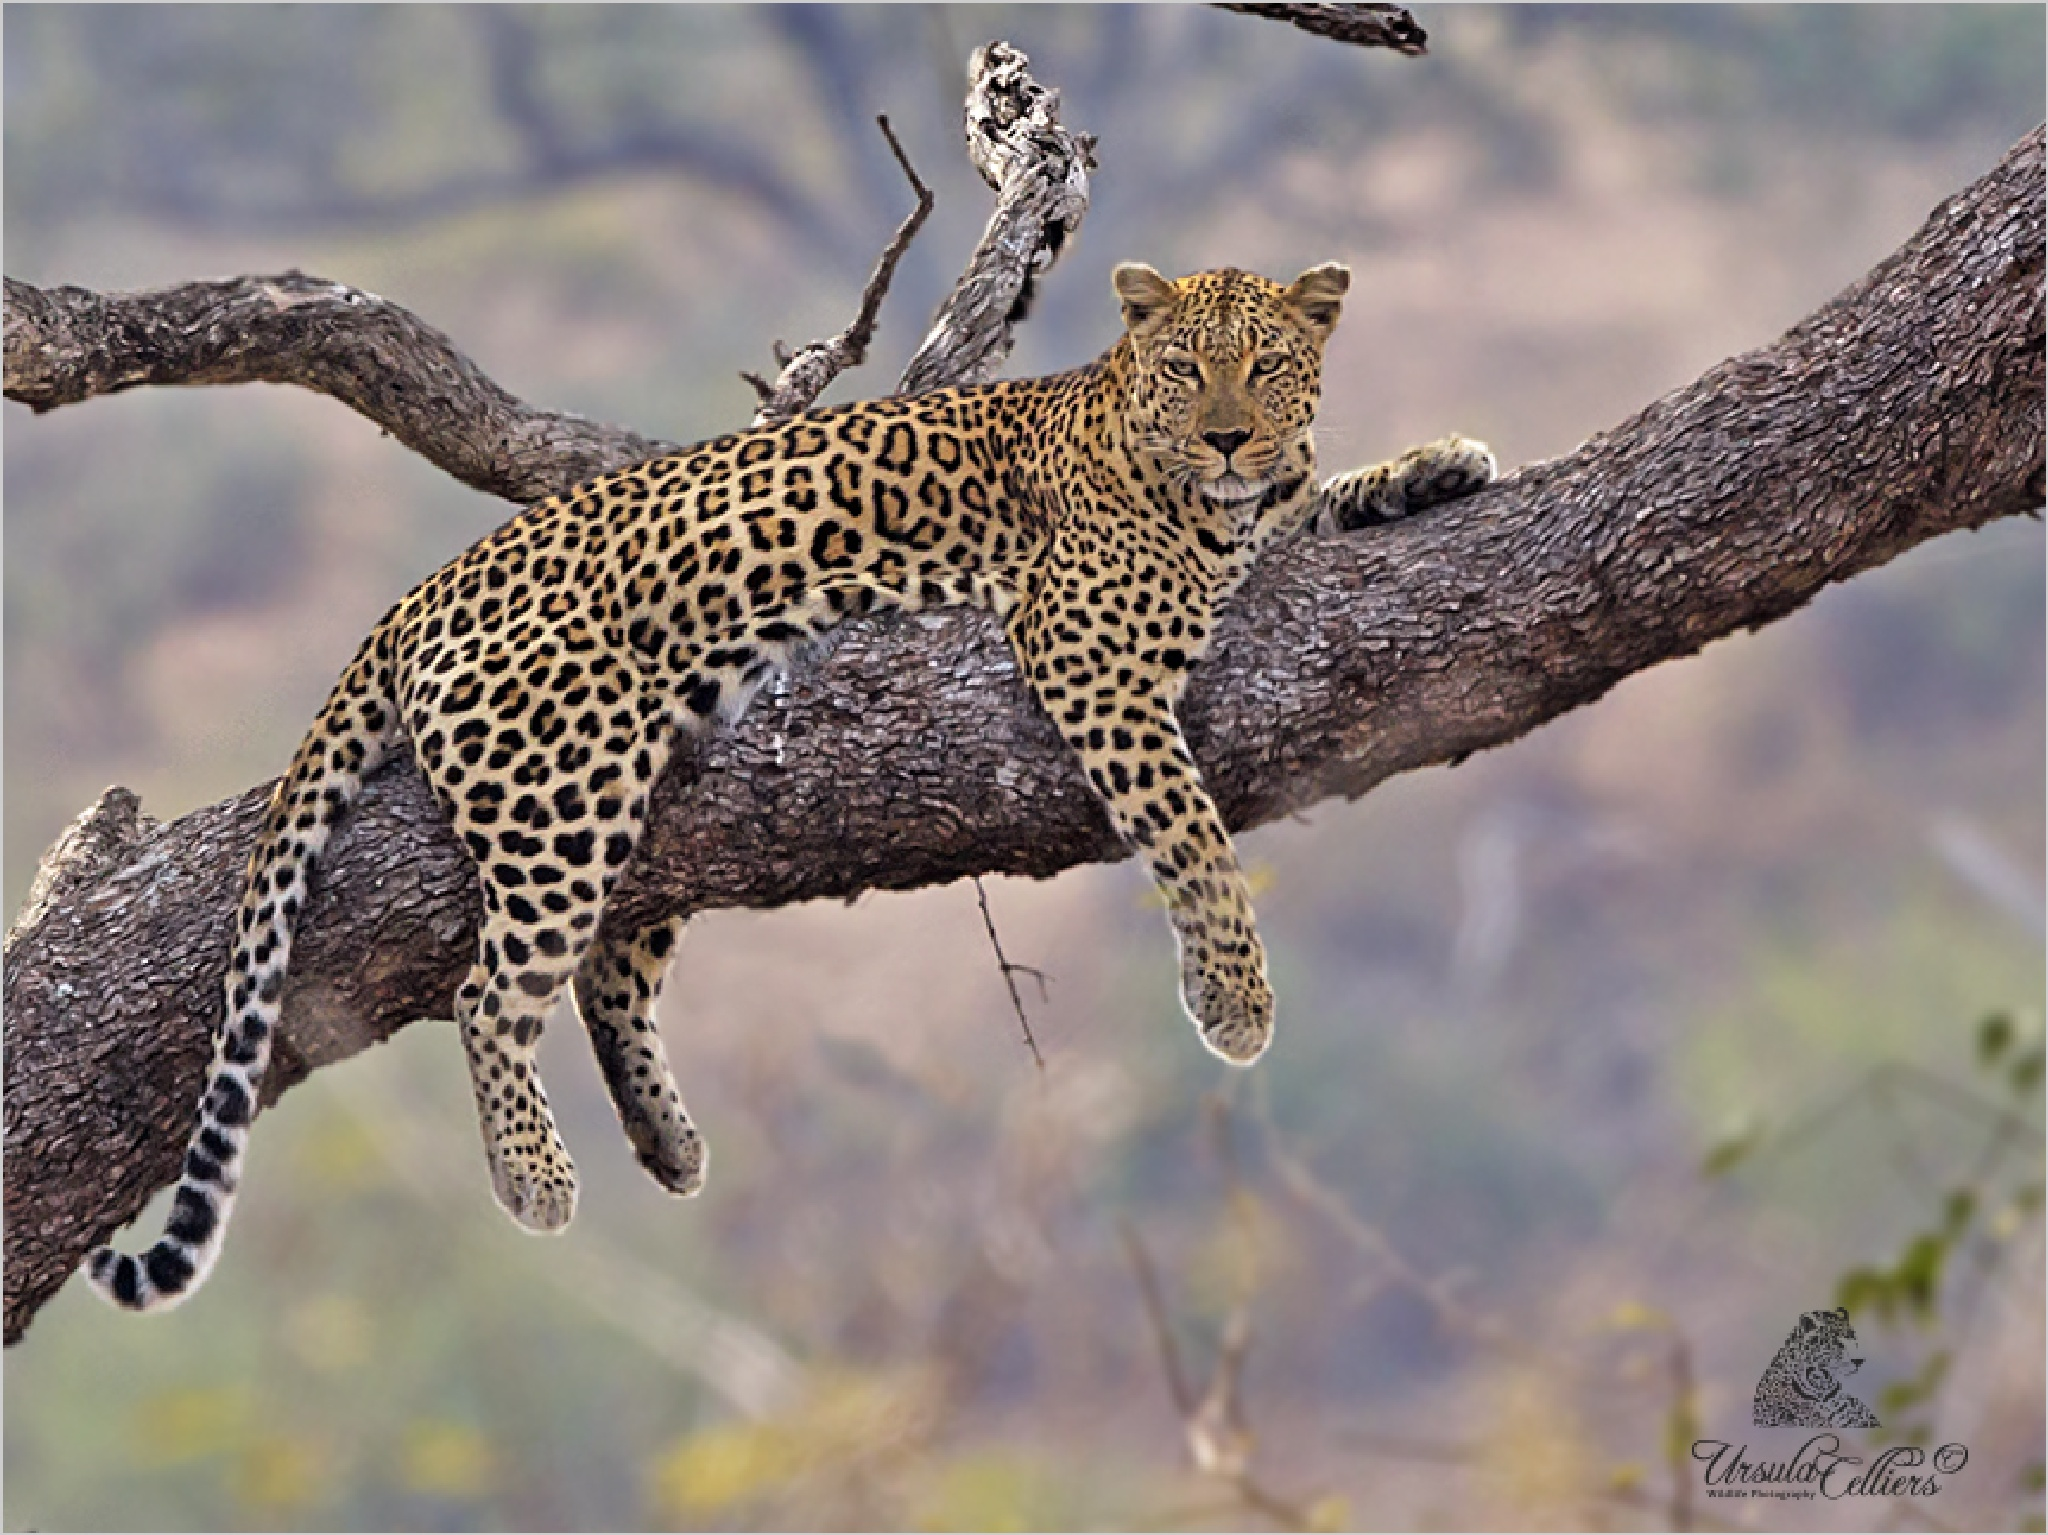 Resting Leopard by Ursula Celliers - Wildlife Photography